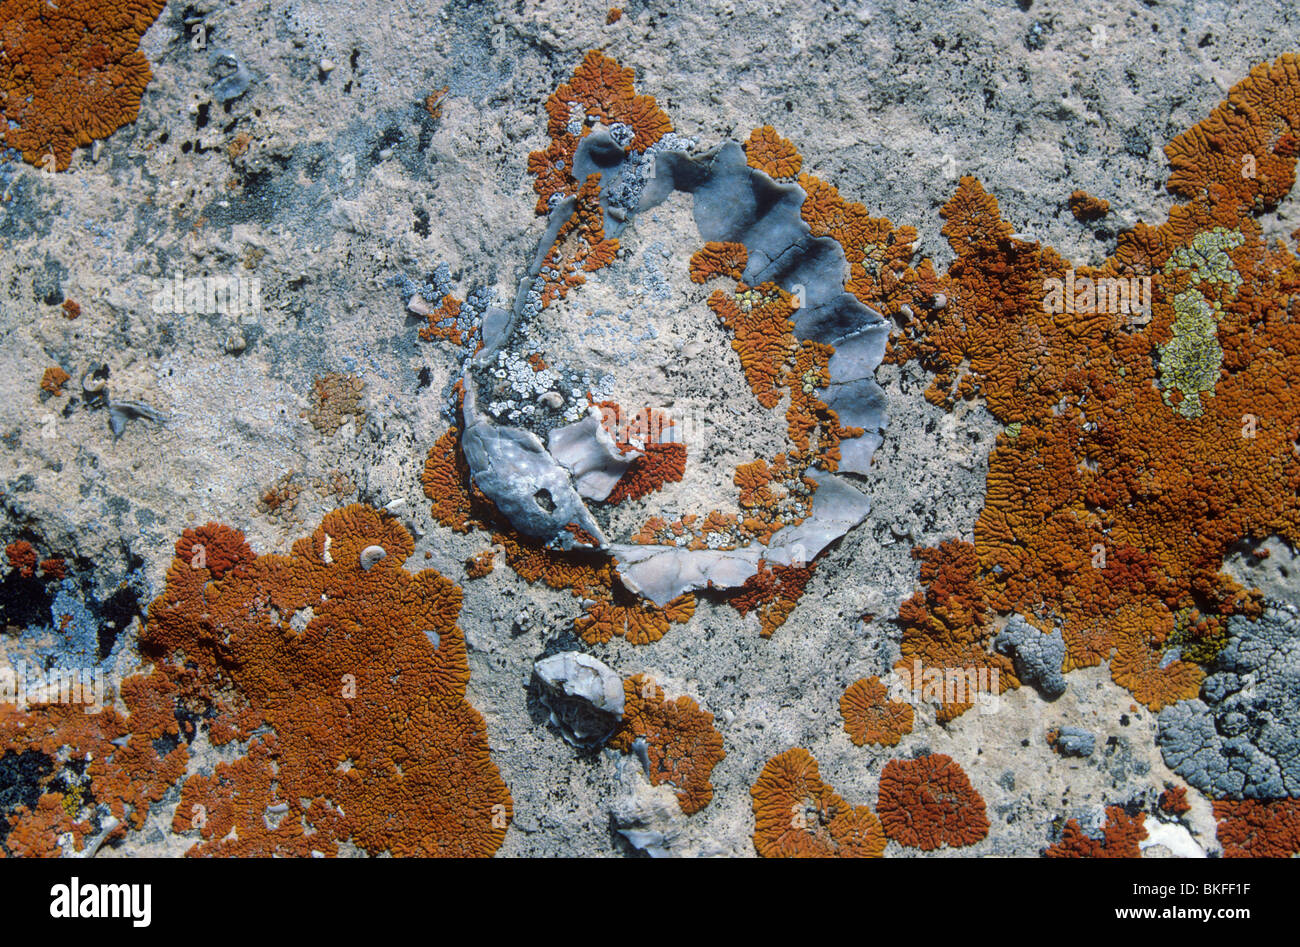 Fossil brachiopod, Meekella, in Kaibab Limestone, with colorful lichens, at Grand Canyon National Park, Arizona, - Stock Image